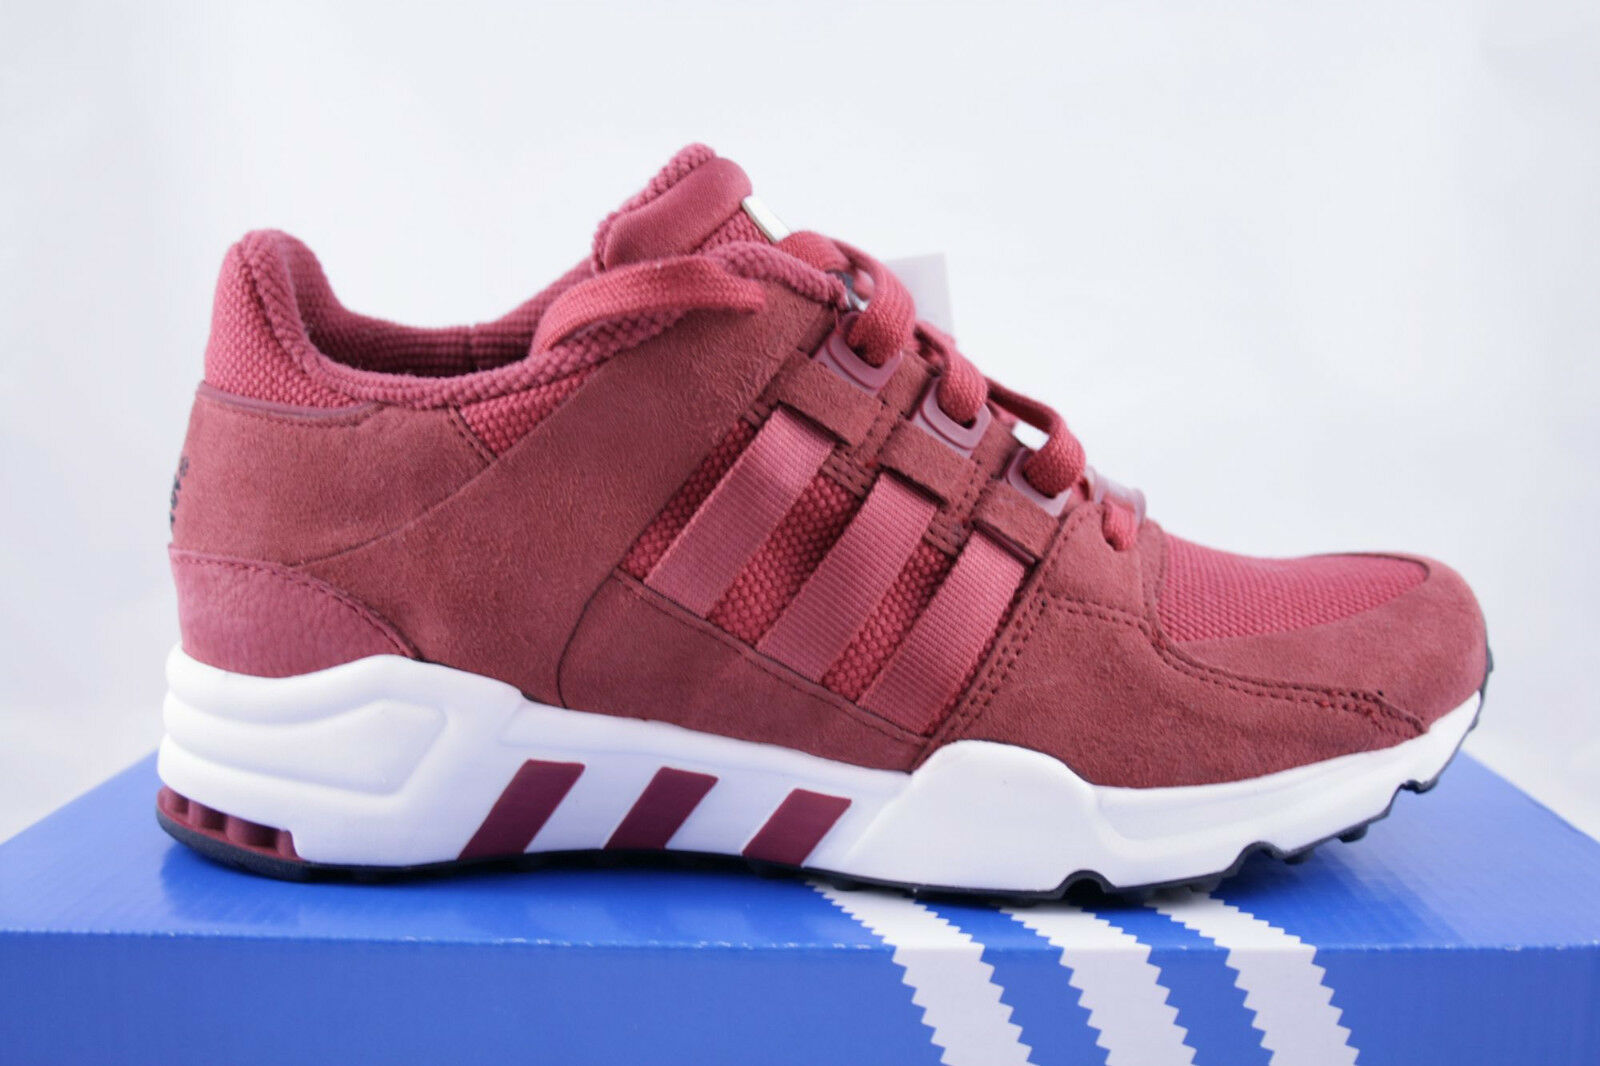 Adidas EQT Equipment Running Support Herrenschuh Gr. 40 2 3 D67725 rot rot